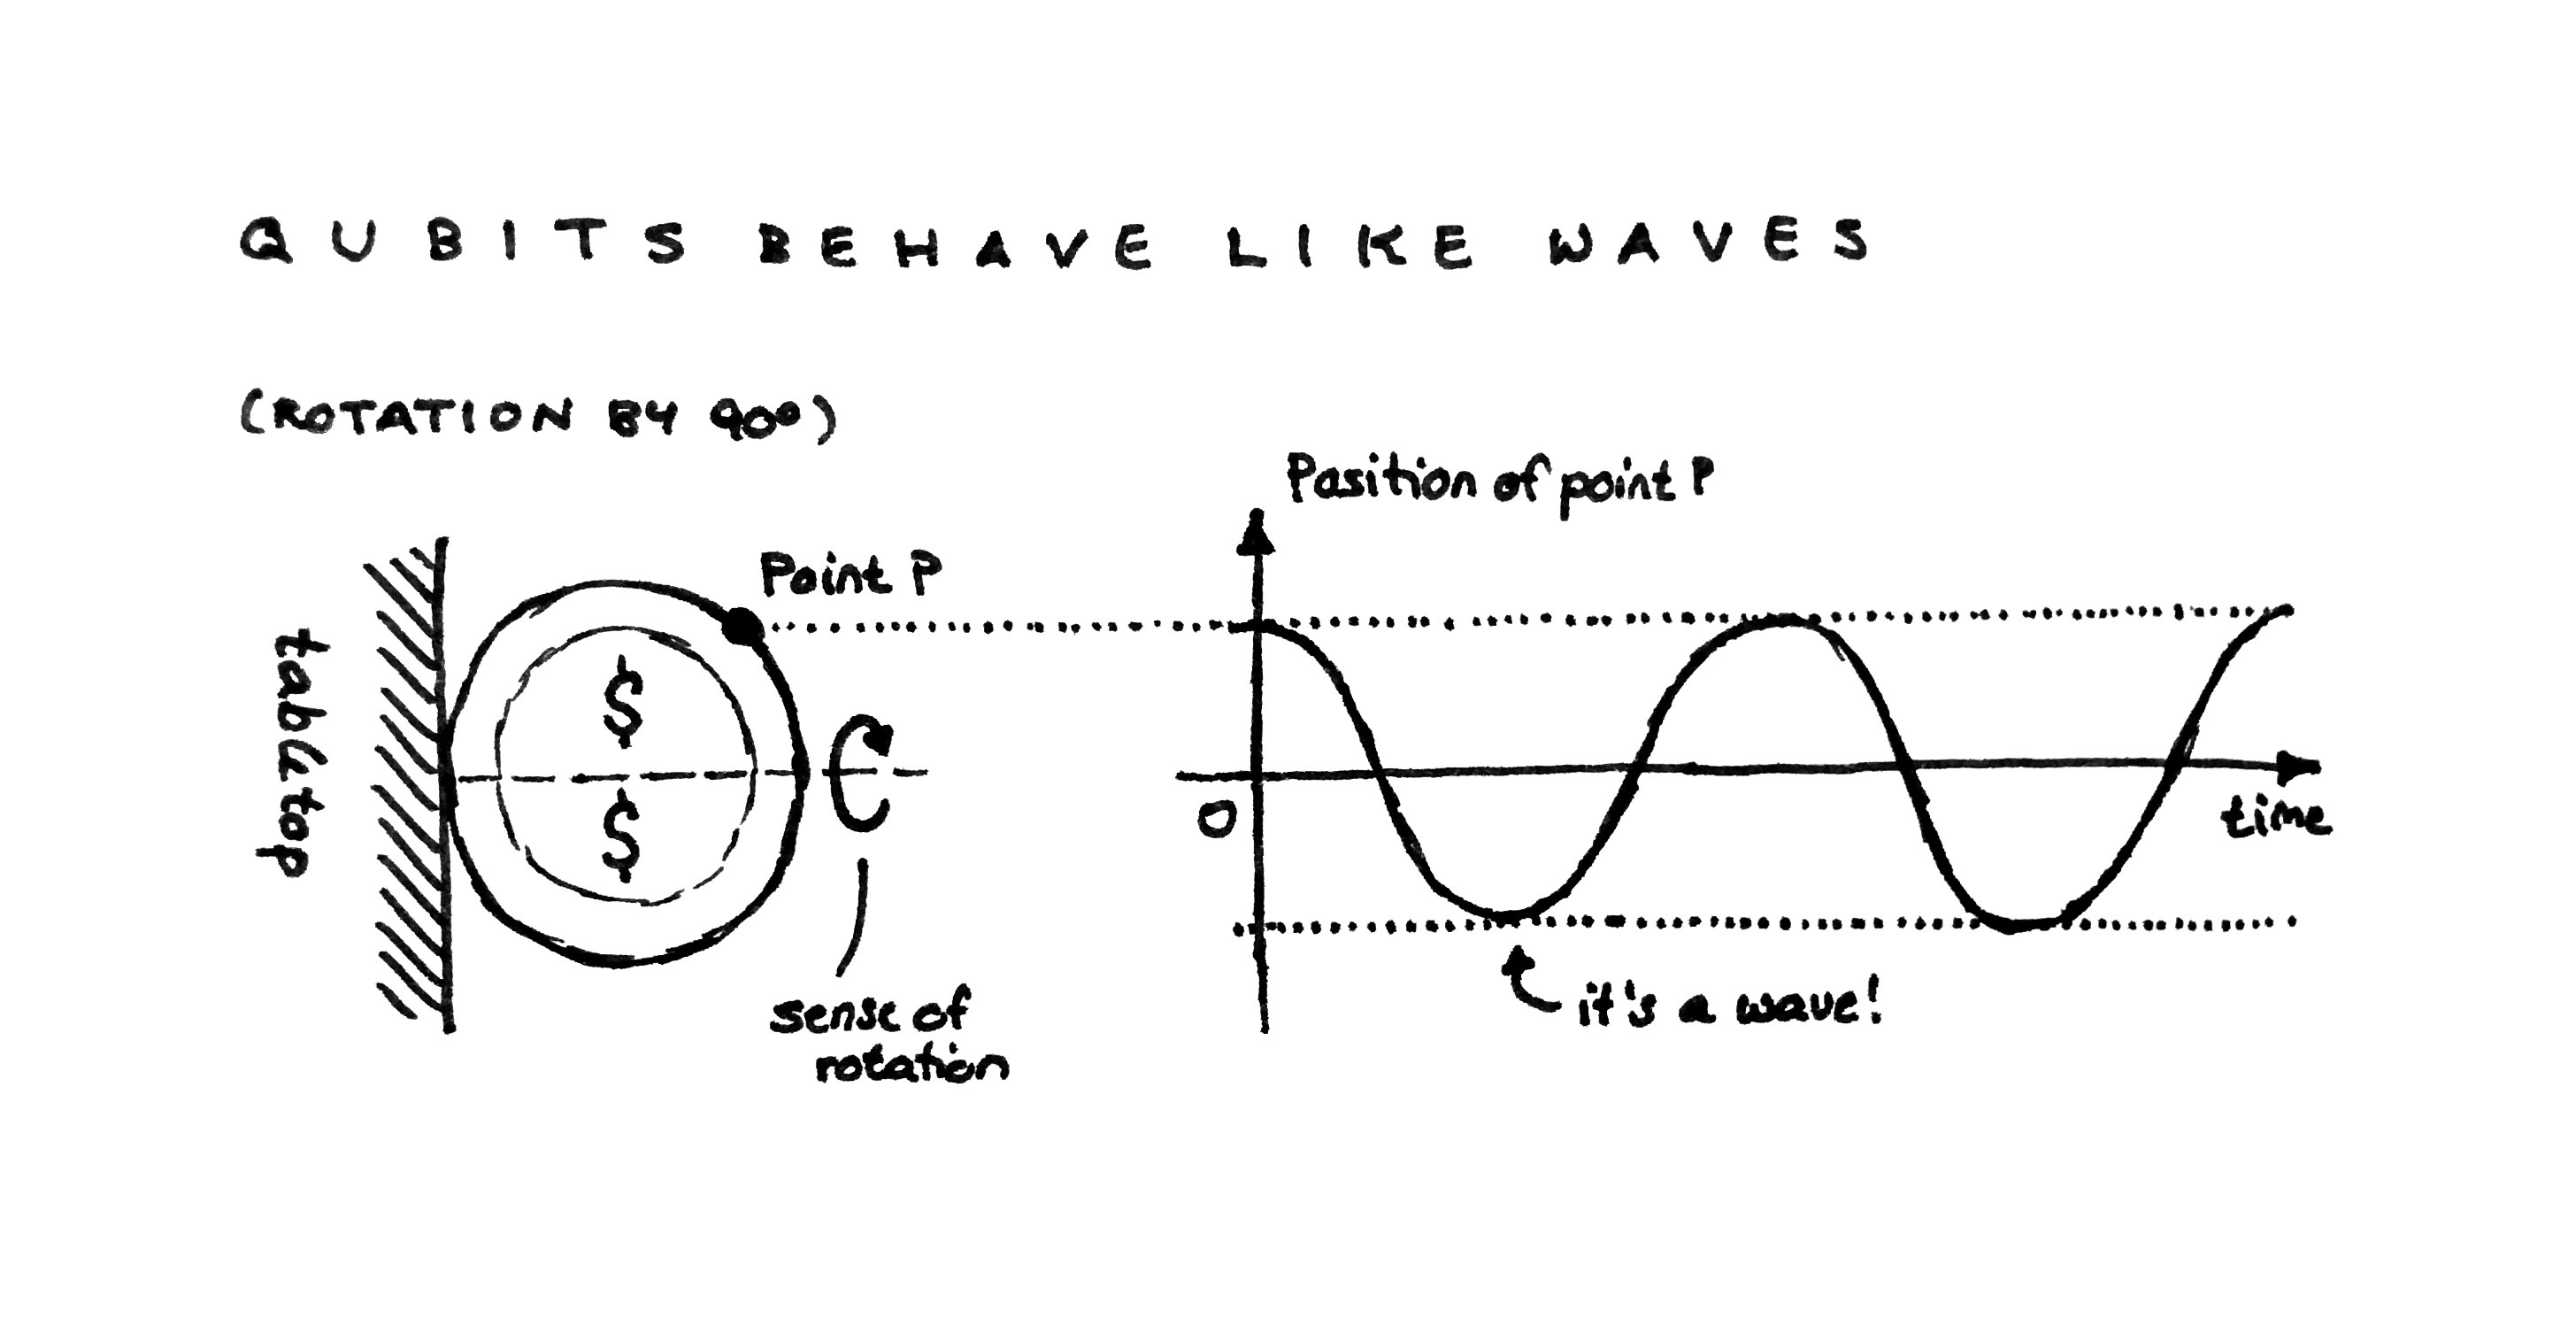 Schematic of trajectory of a point on a spinning coin